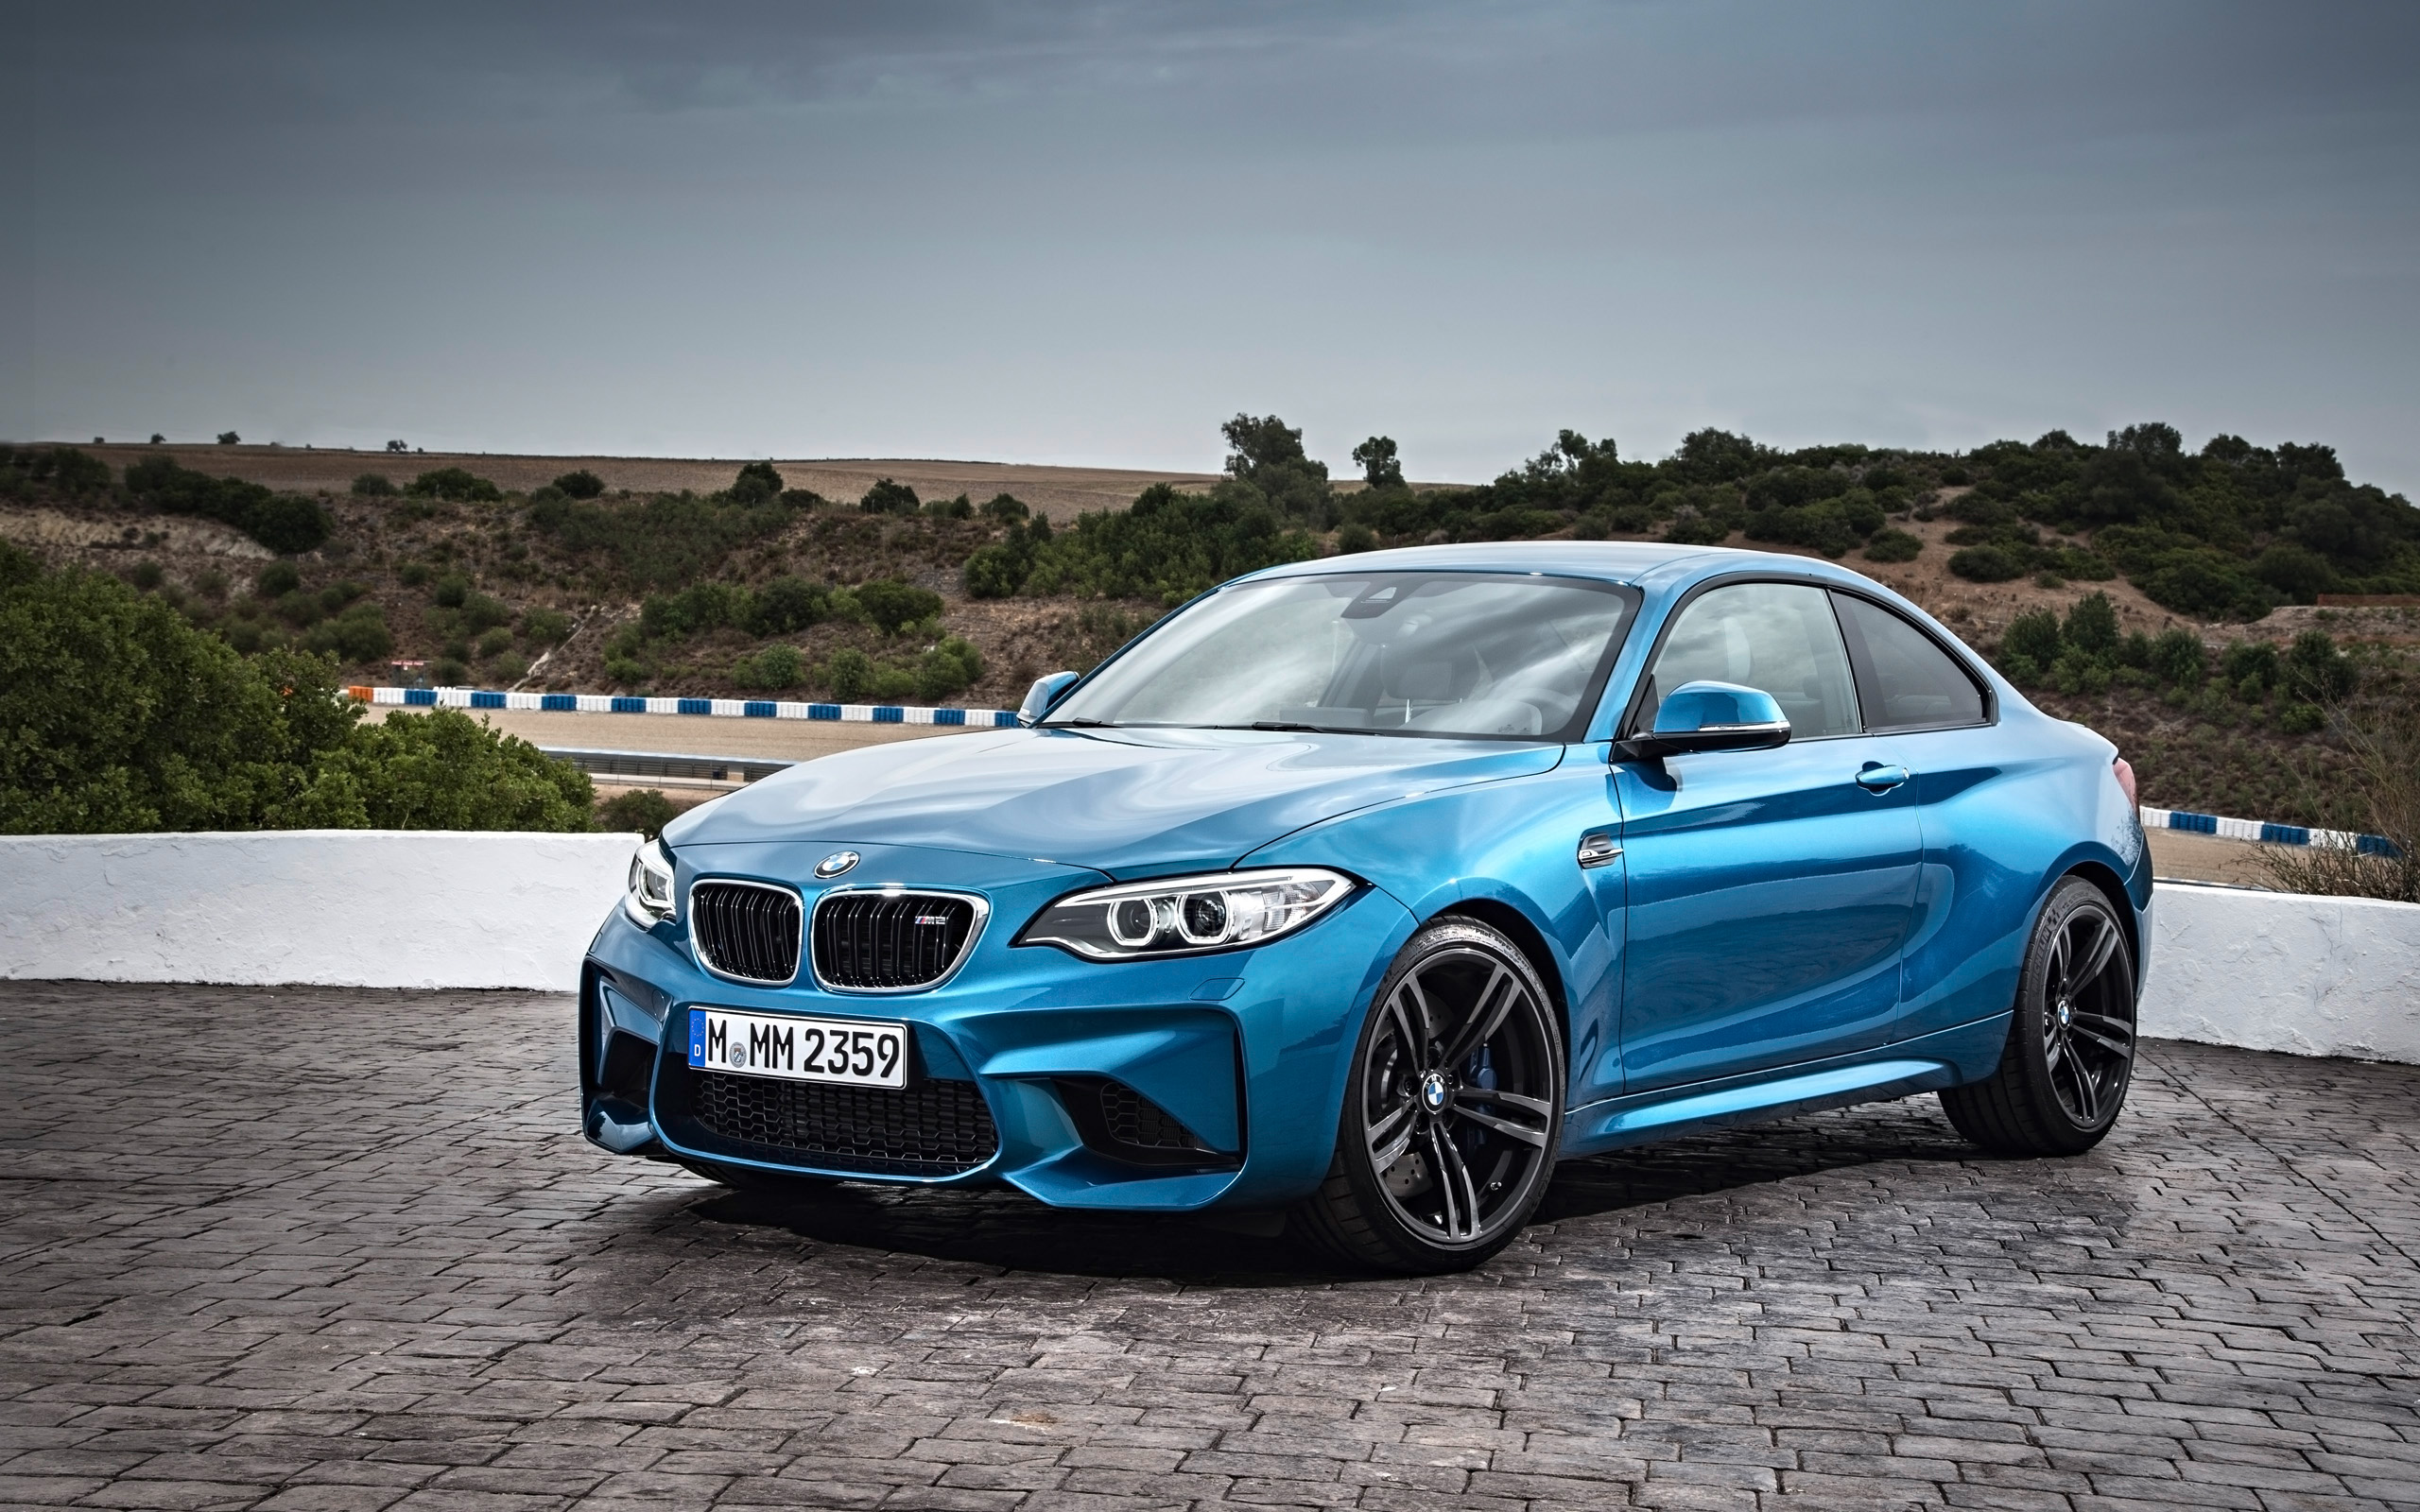 2016 BMW M2 Coupe Wallpaper | HD Car Wallpapers